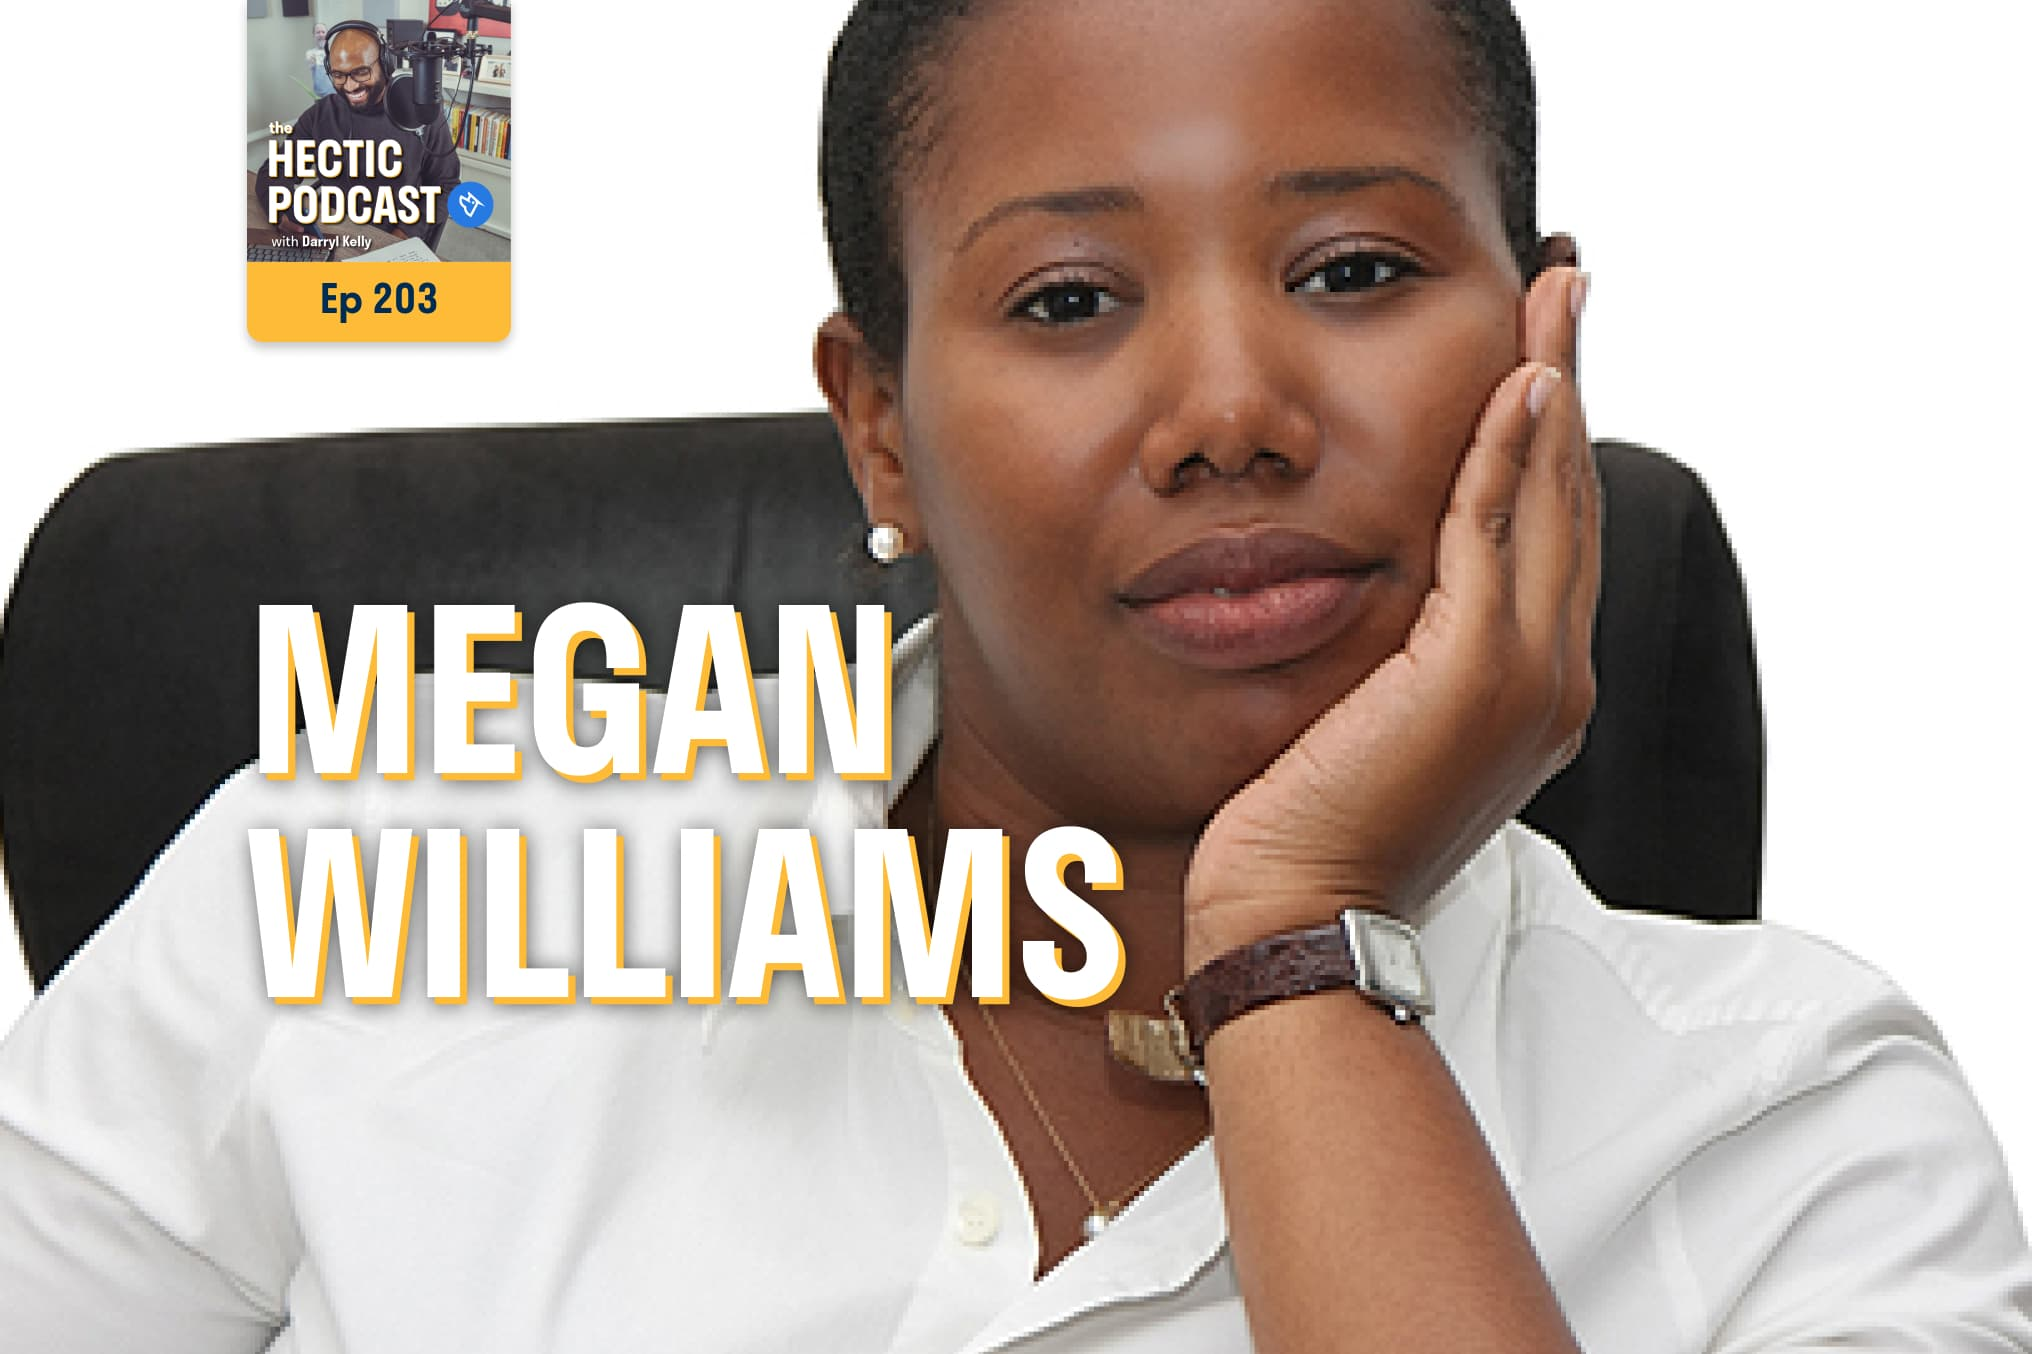 The Hectic Podcast with Megan Williams